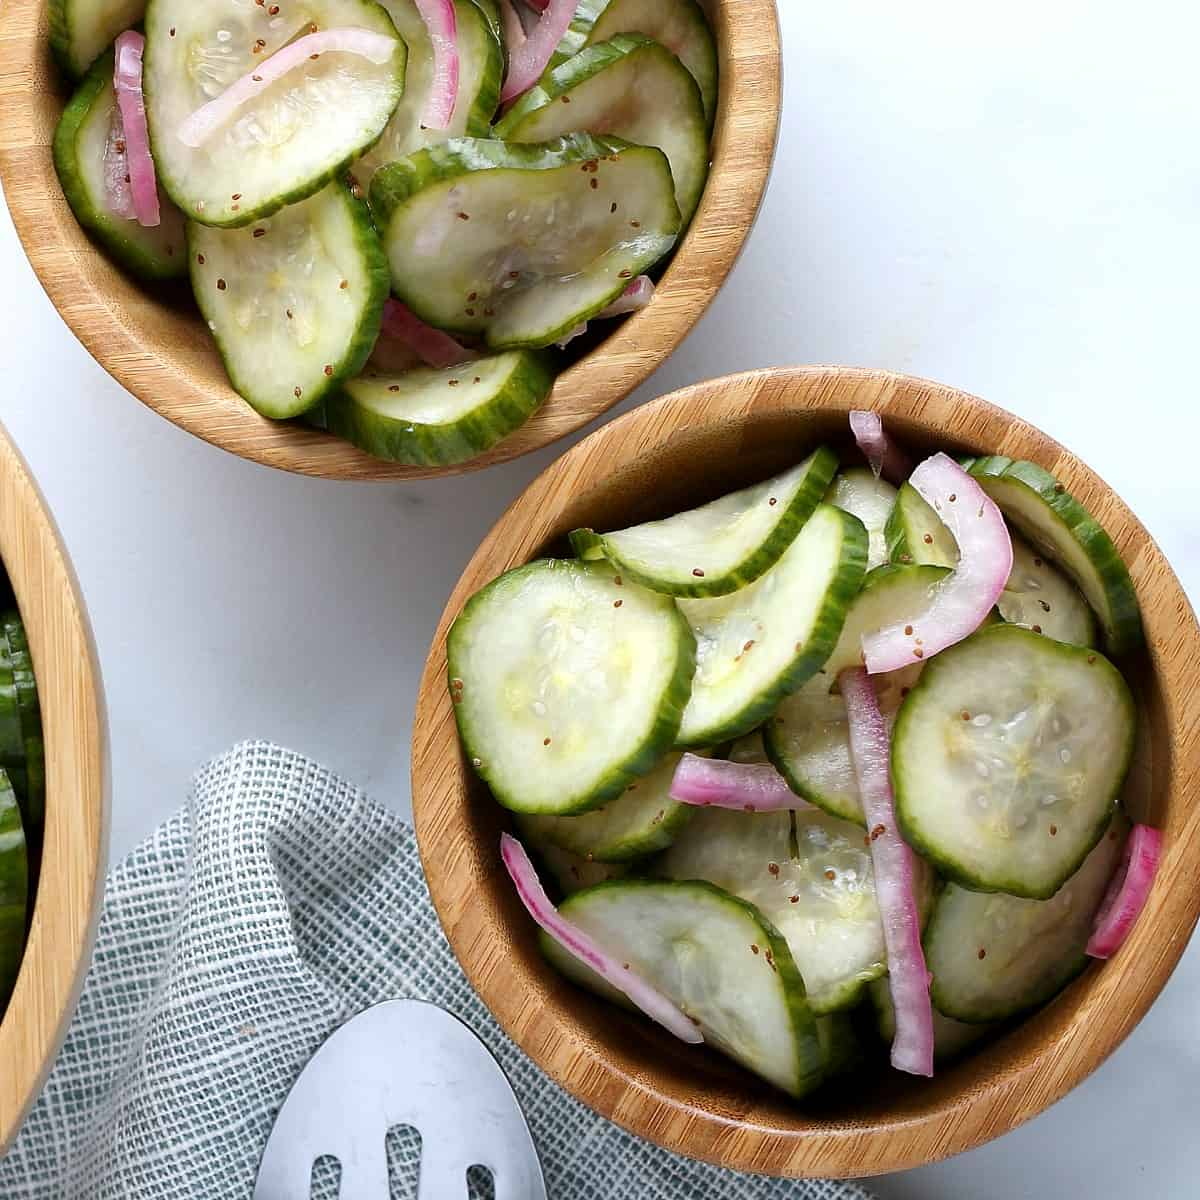 Overhead view of two wooden bowls filled with colorful green, white and deep purple veggie colors for this cucumber vinegar salad recipe.